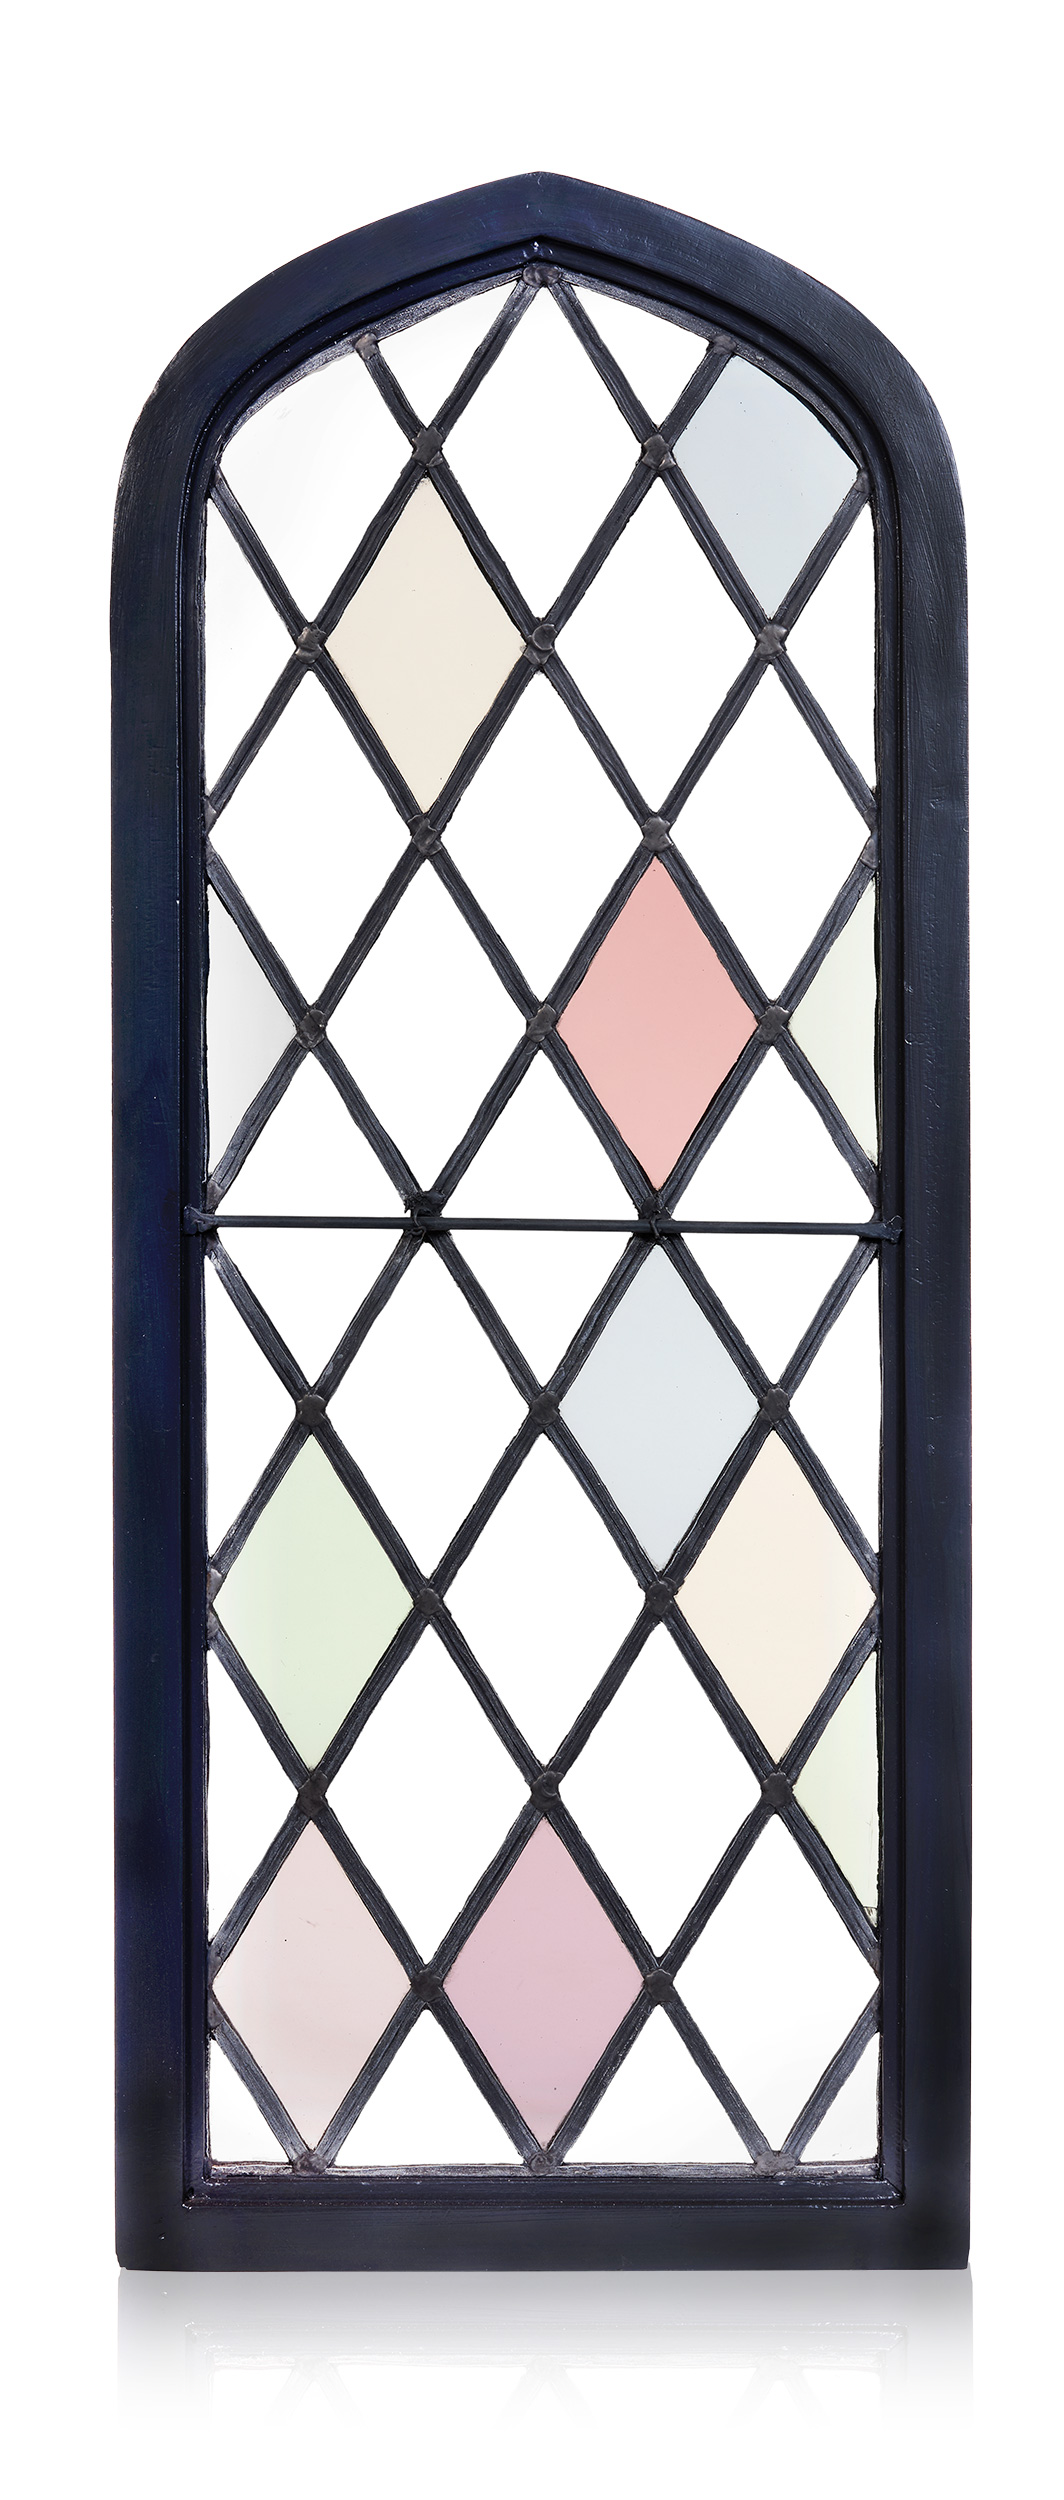 Fixed cathedral top, diamond leaded glass